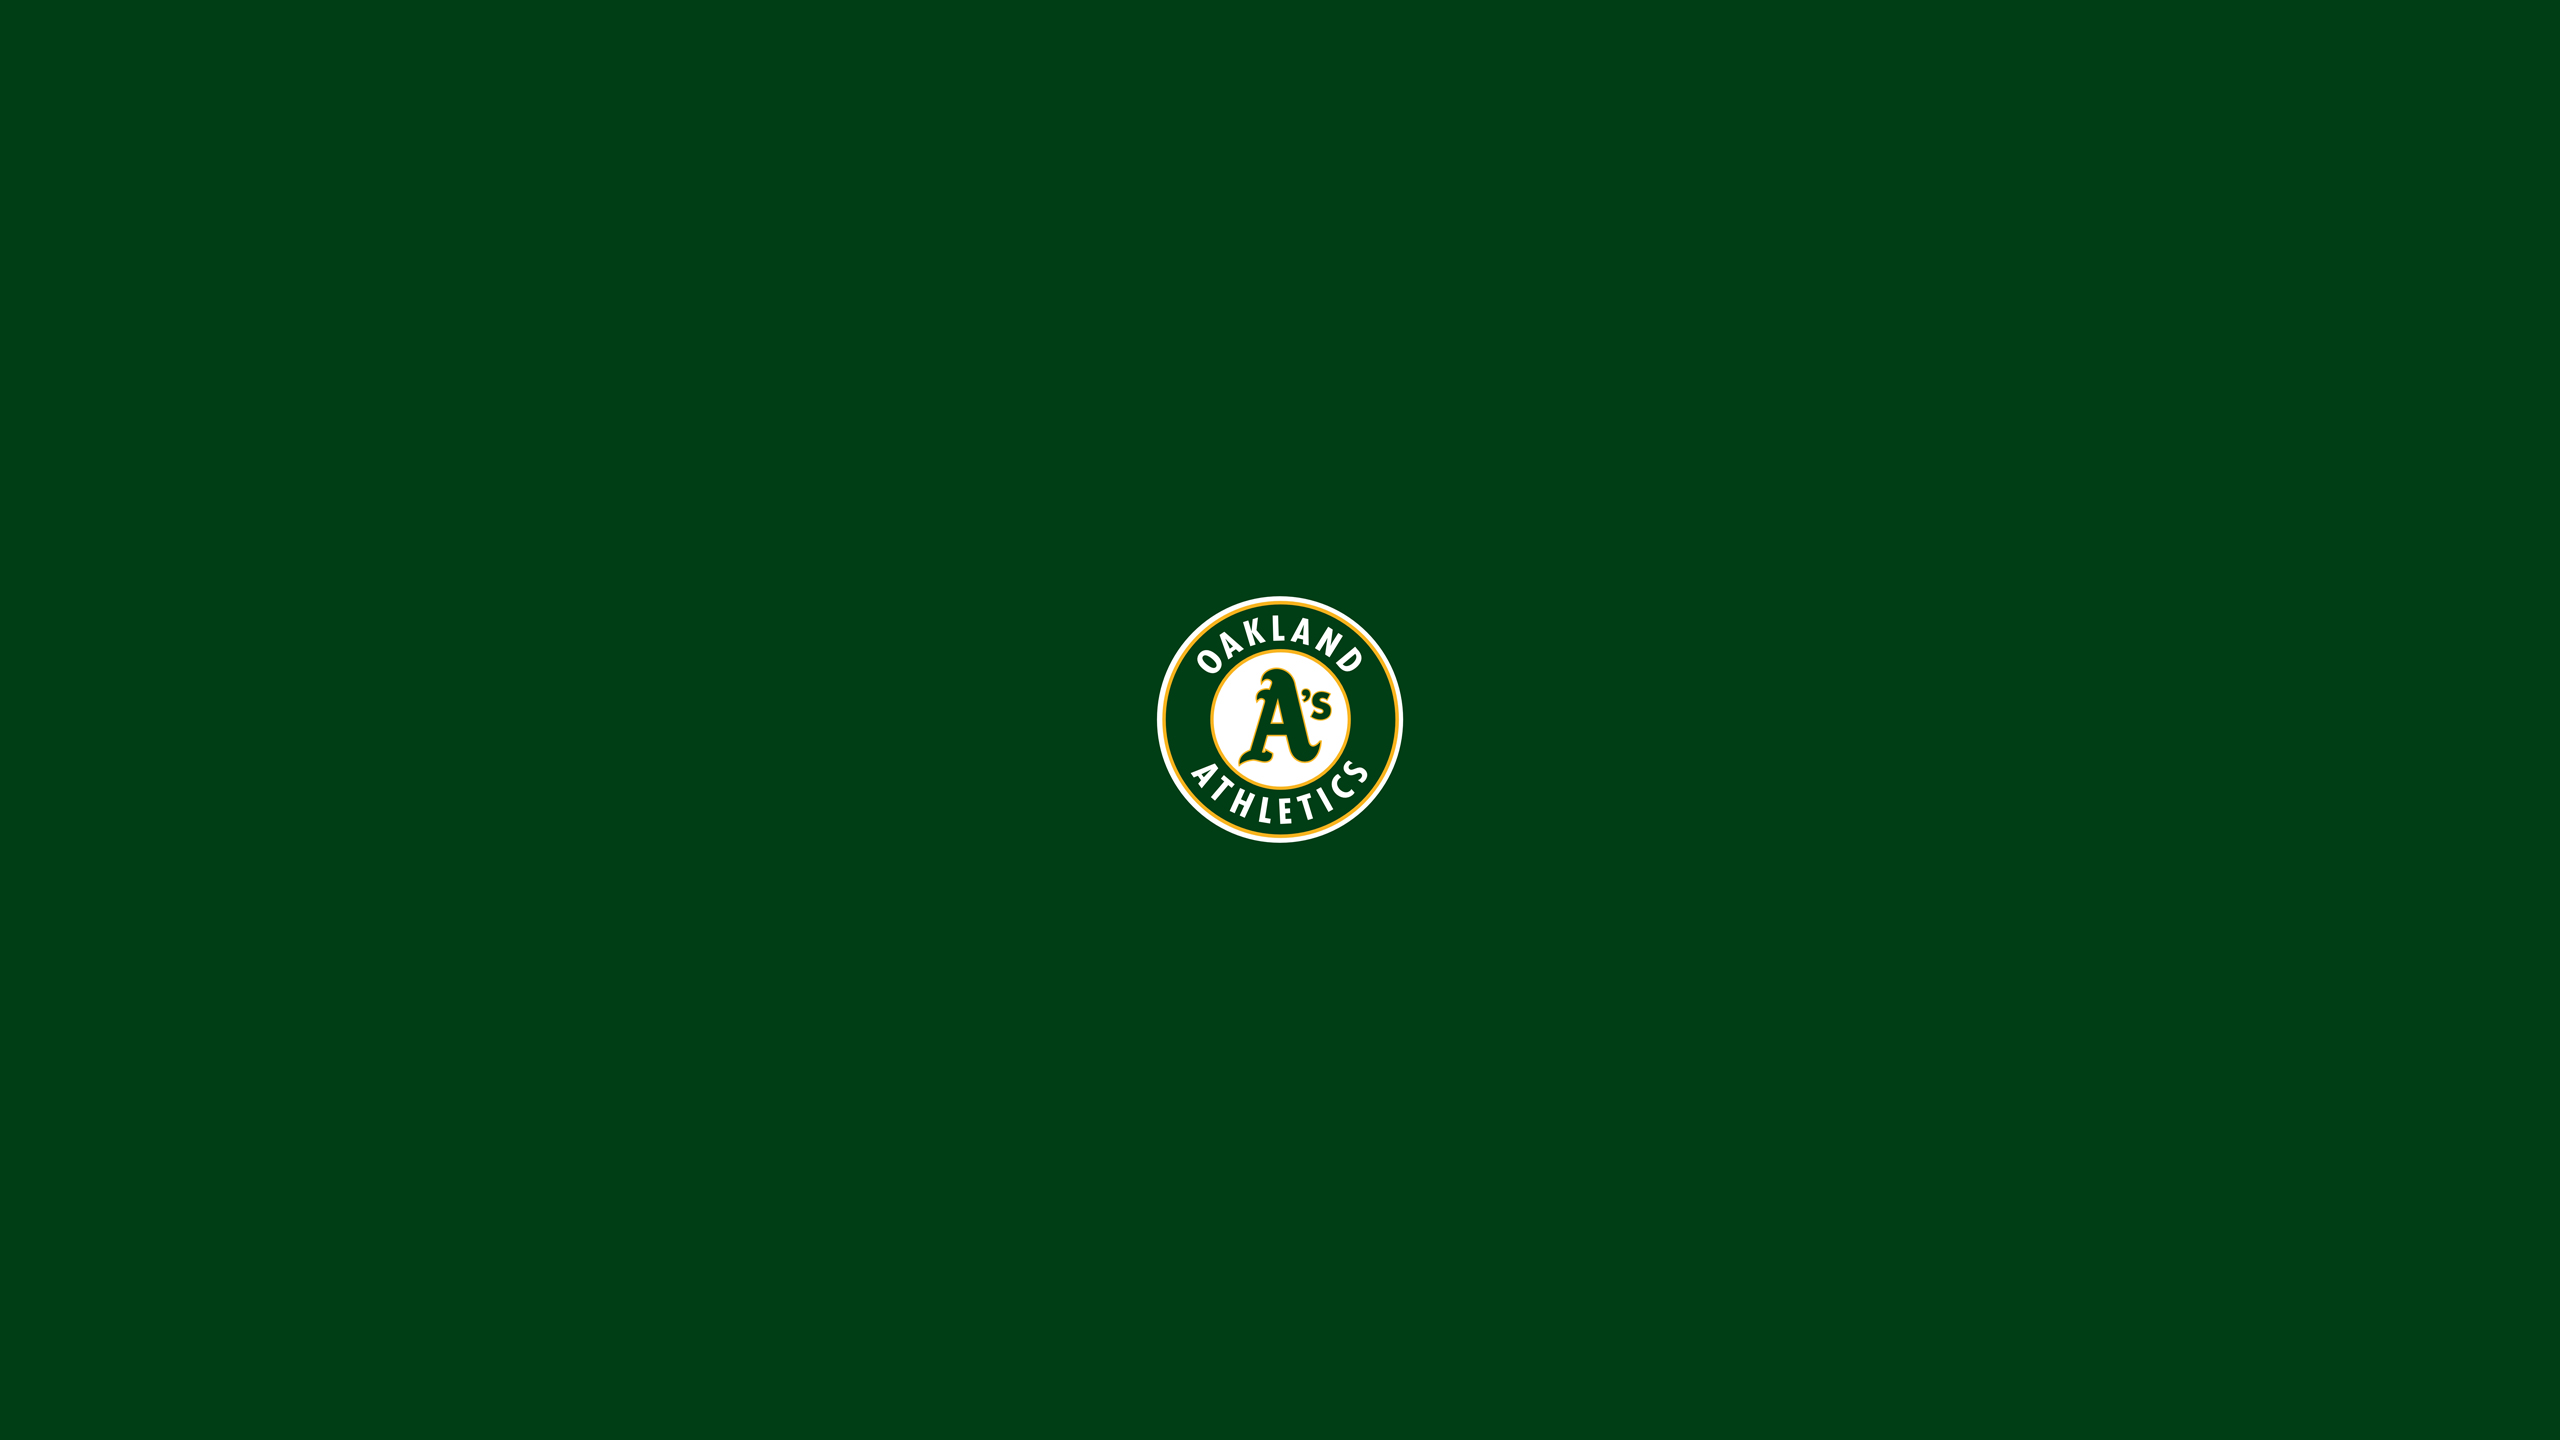 Oakland Athletics Wallpaper